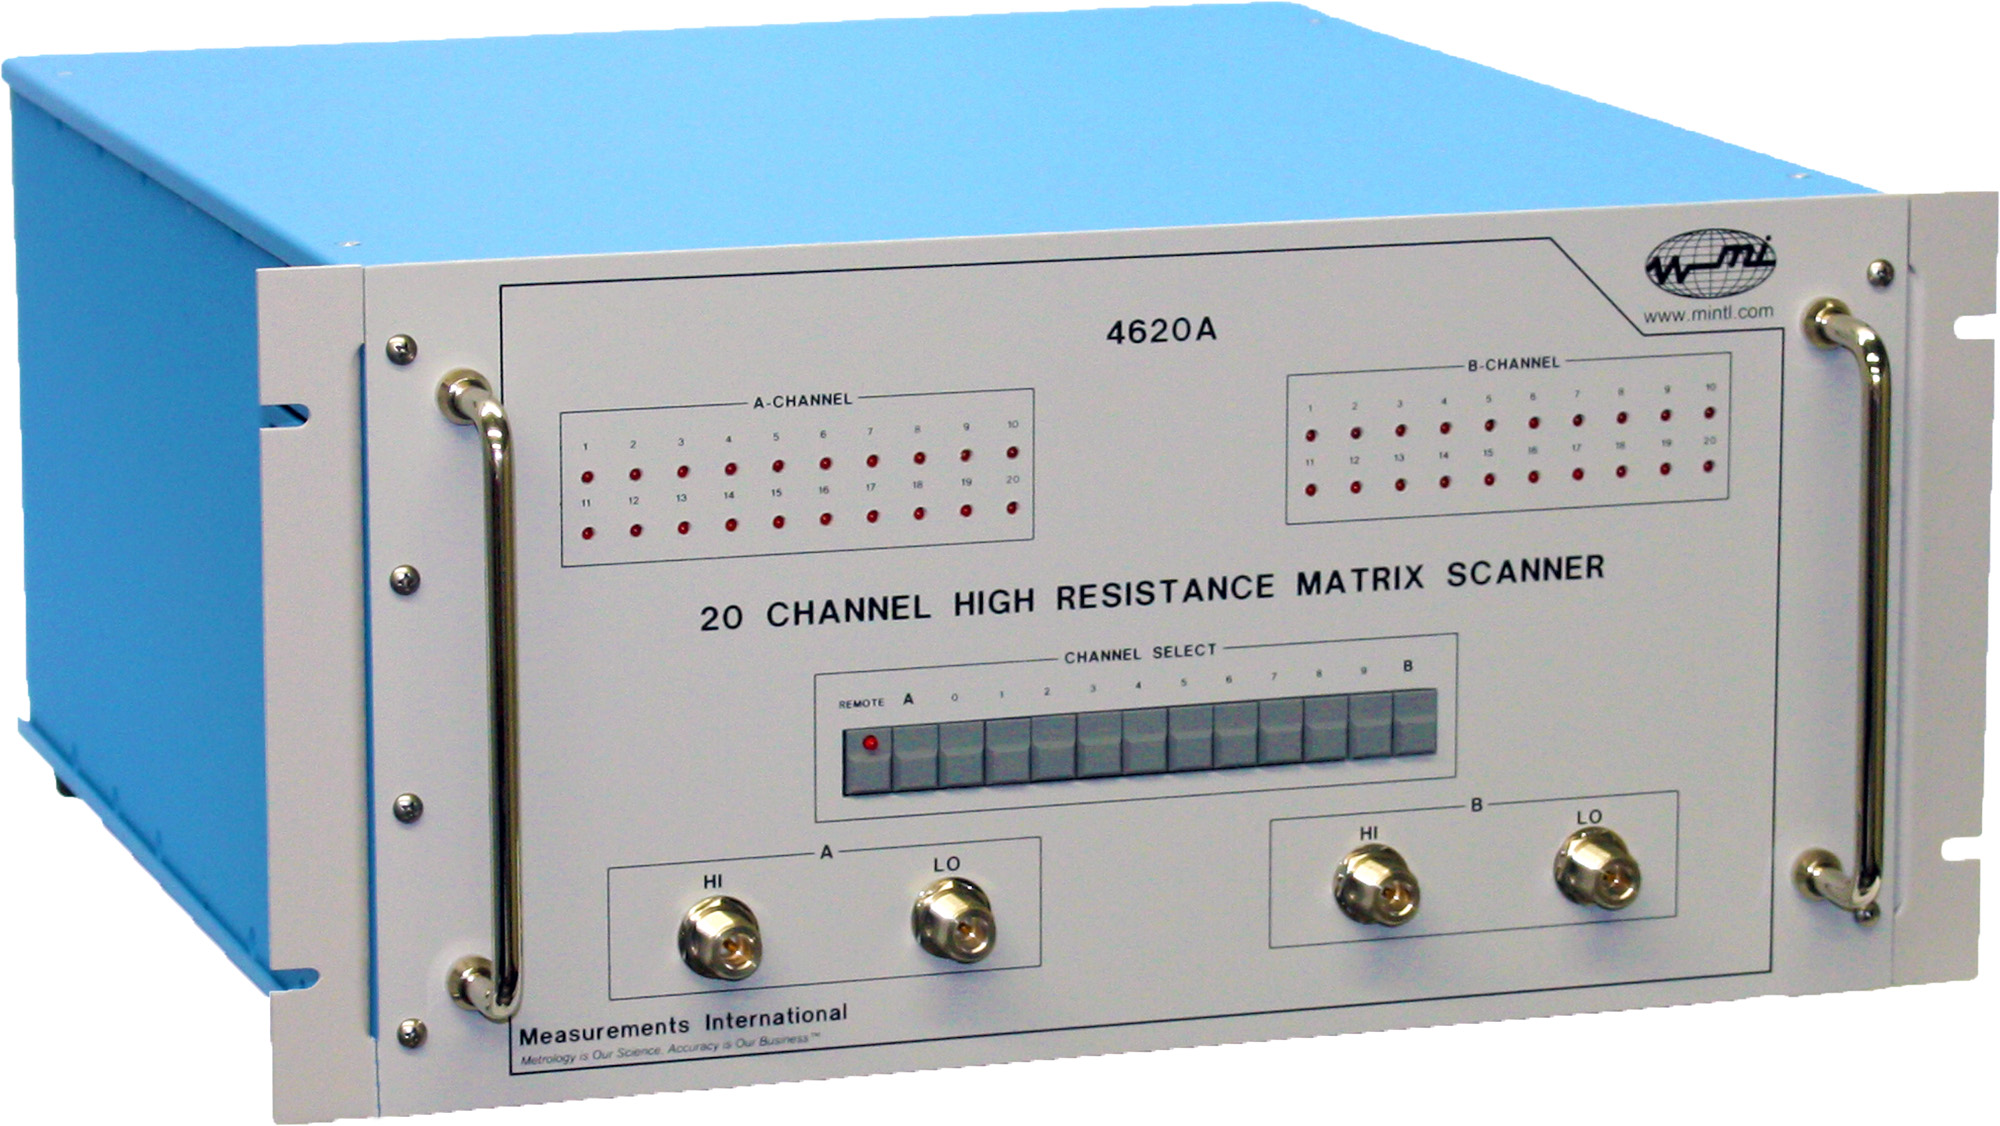 4620A 20 Channel High Resistance Matrix Scanner